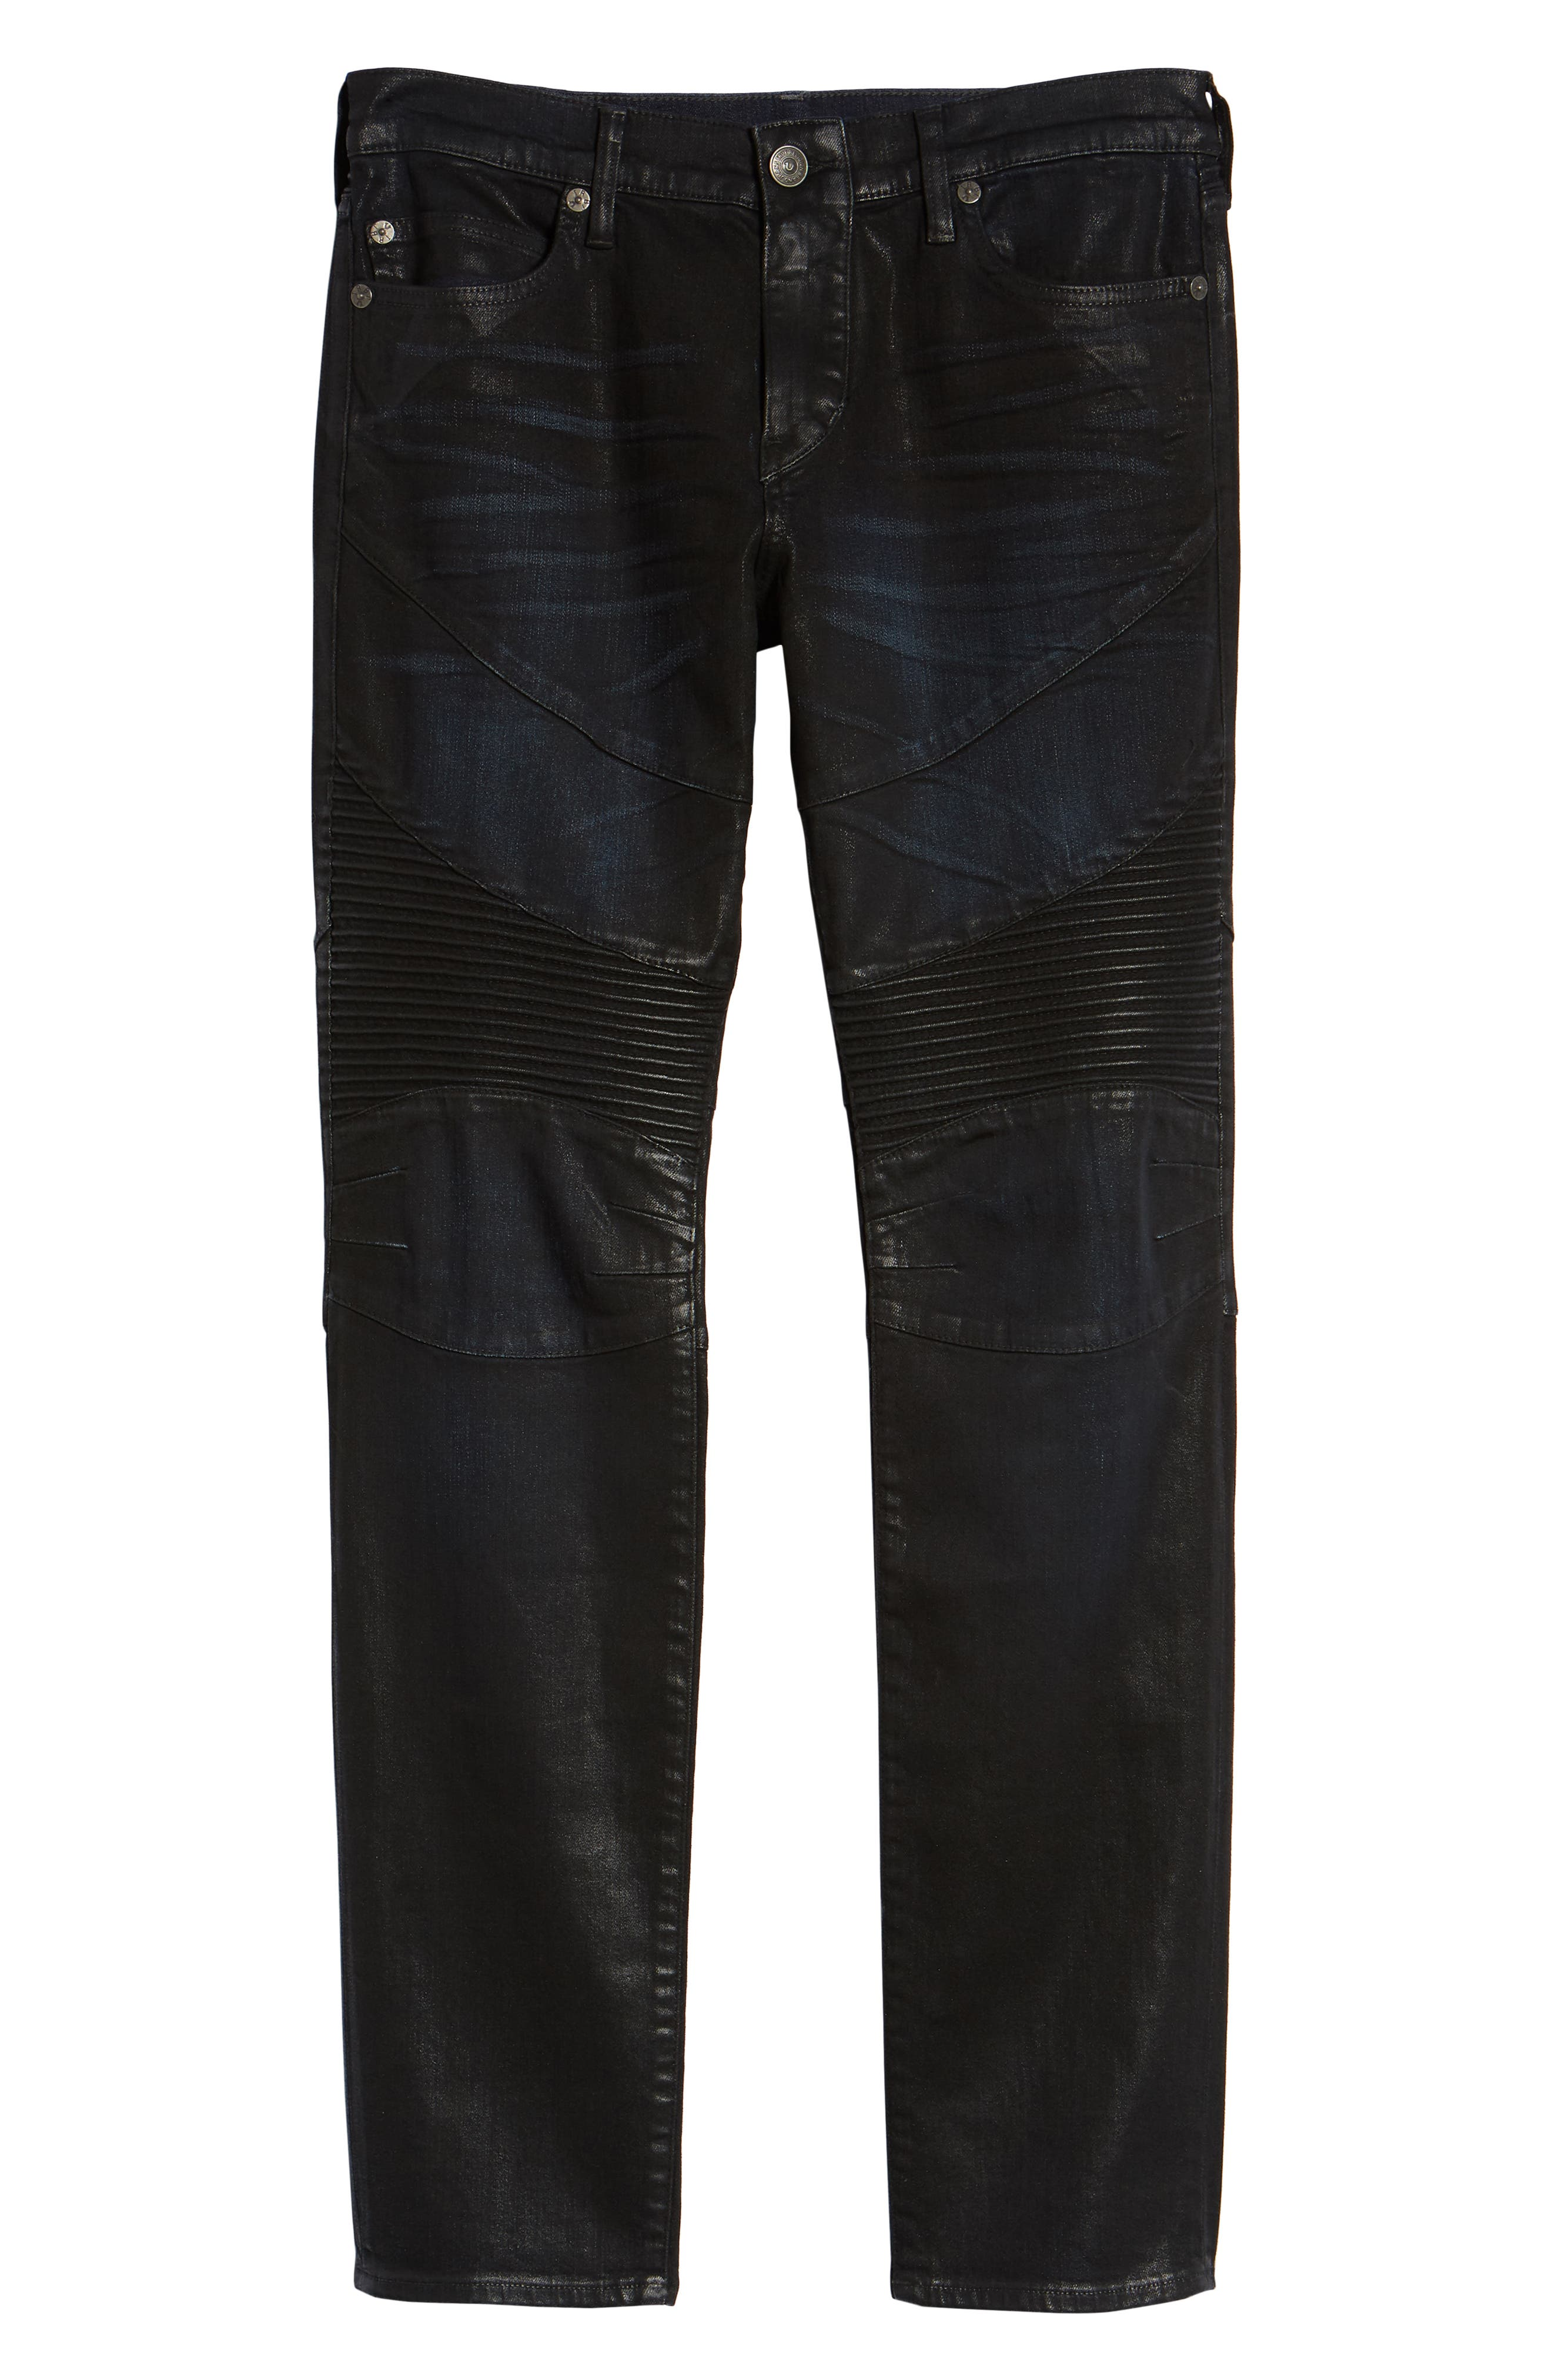 Rocco Skinny Fit Moto Jeans,                             Alternate thumbnail 6, color,                             FLGD BOOST BLUE